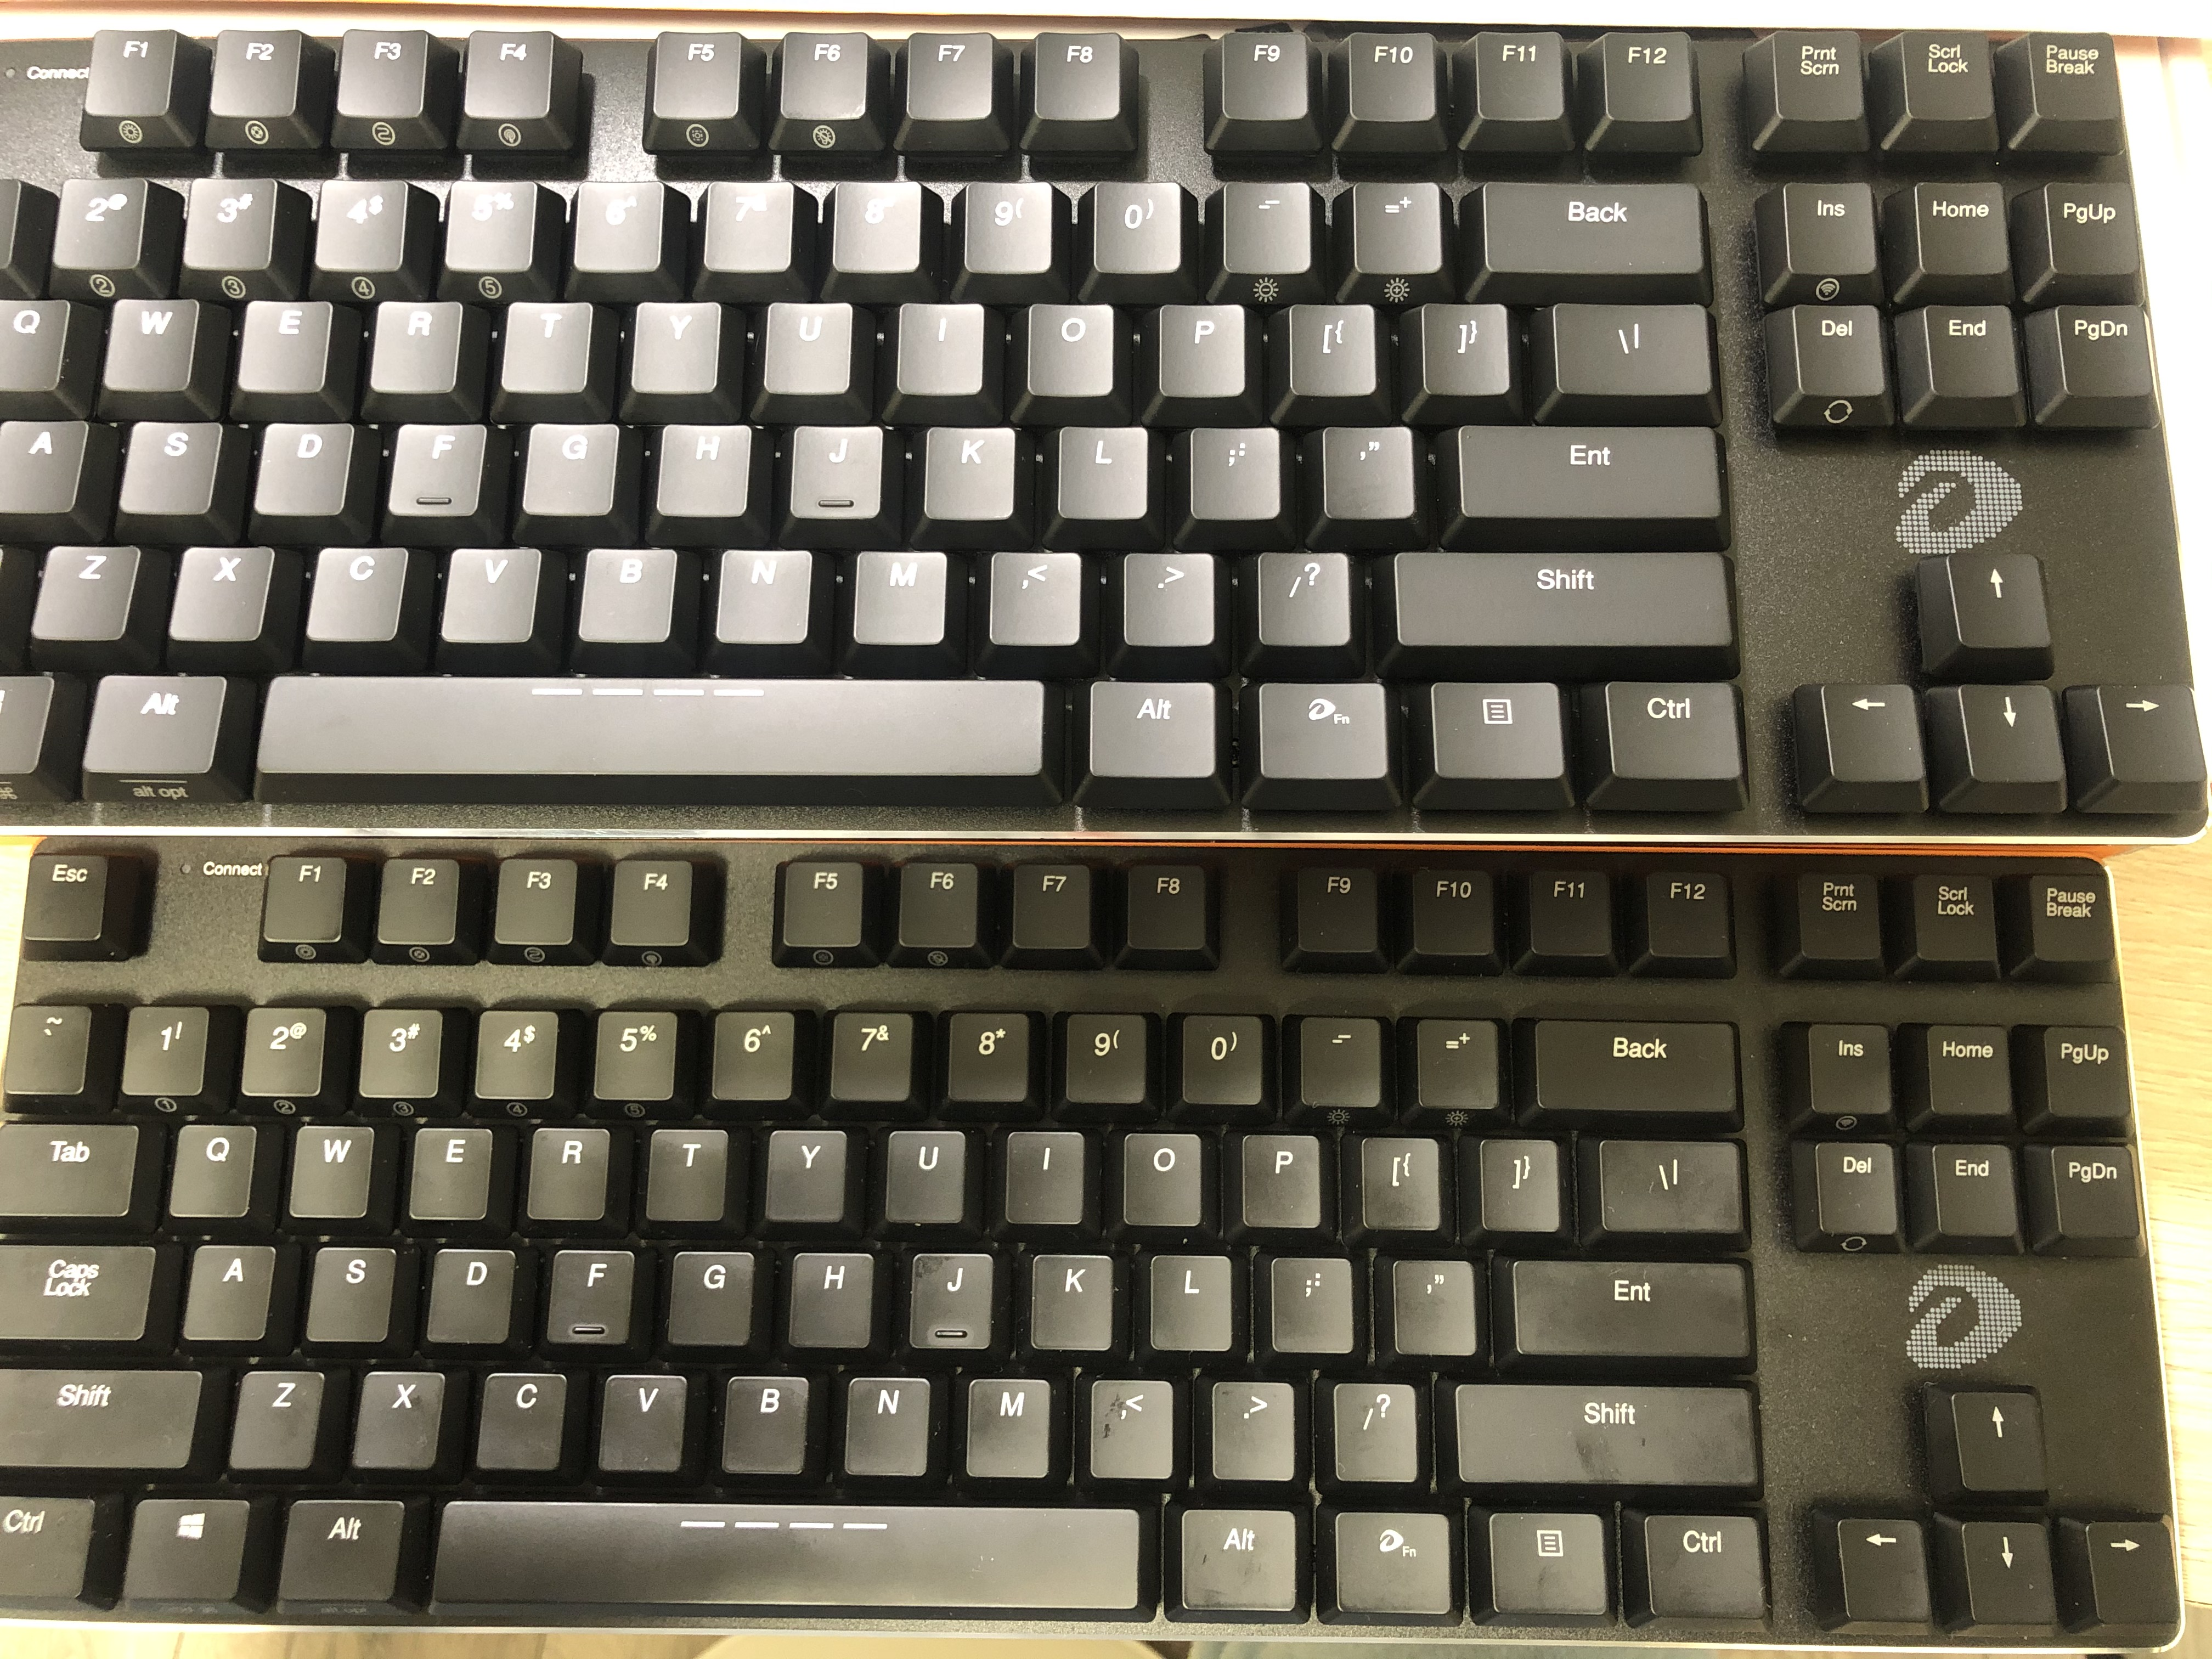 What is better than having one good keyboard? Have two of them. One for office and one for home.